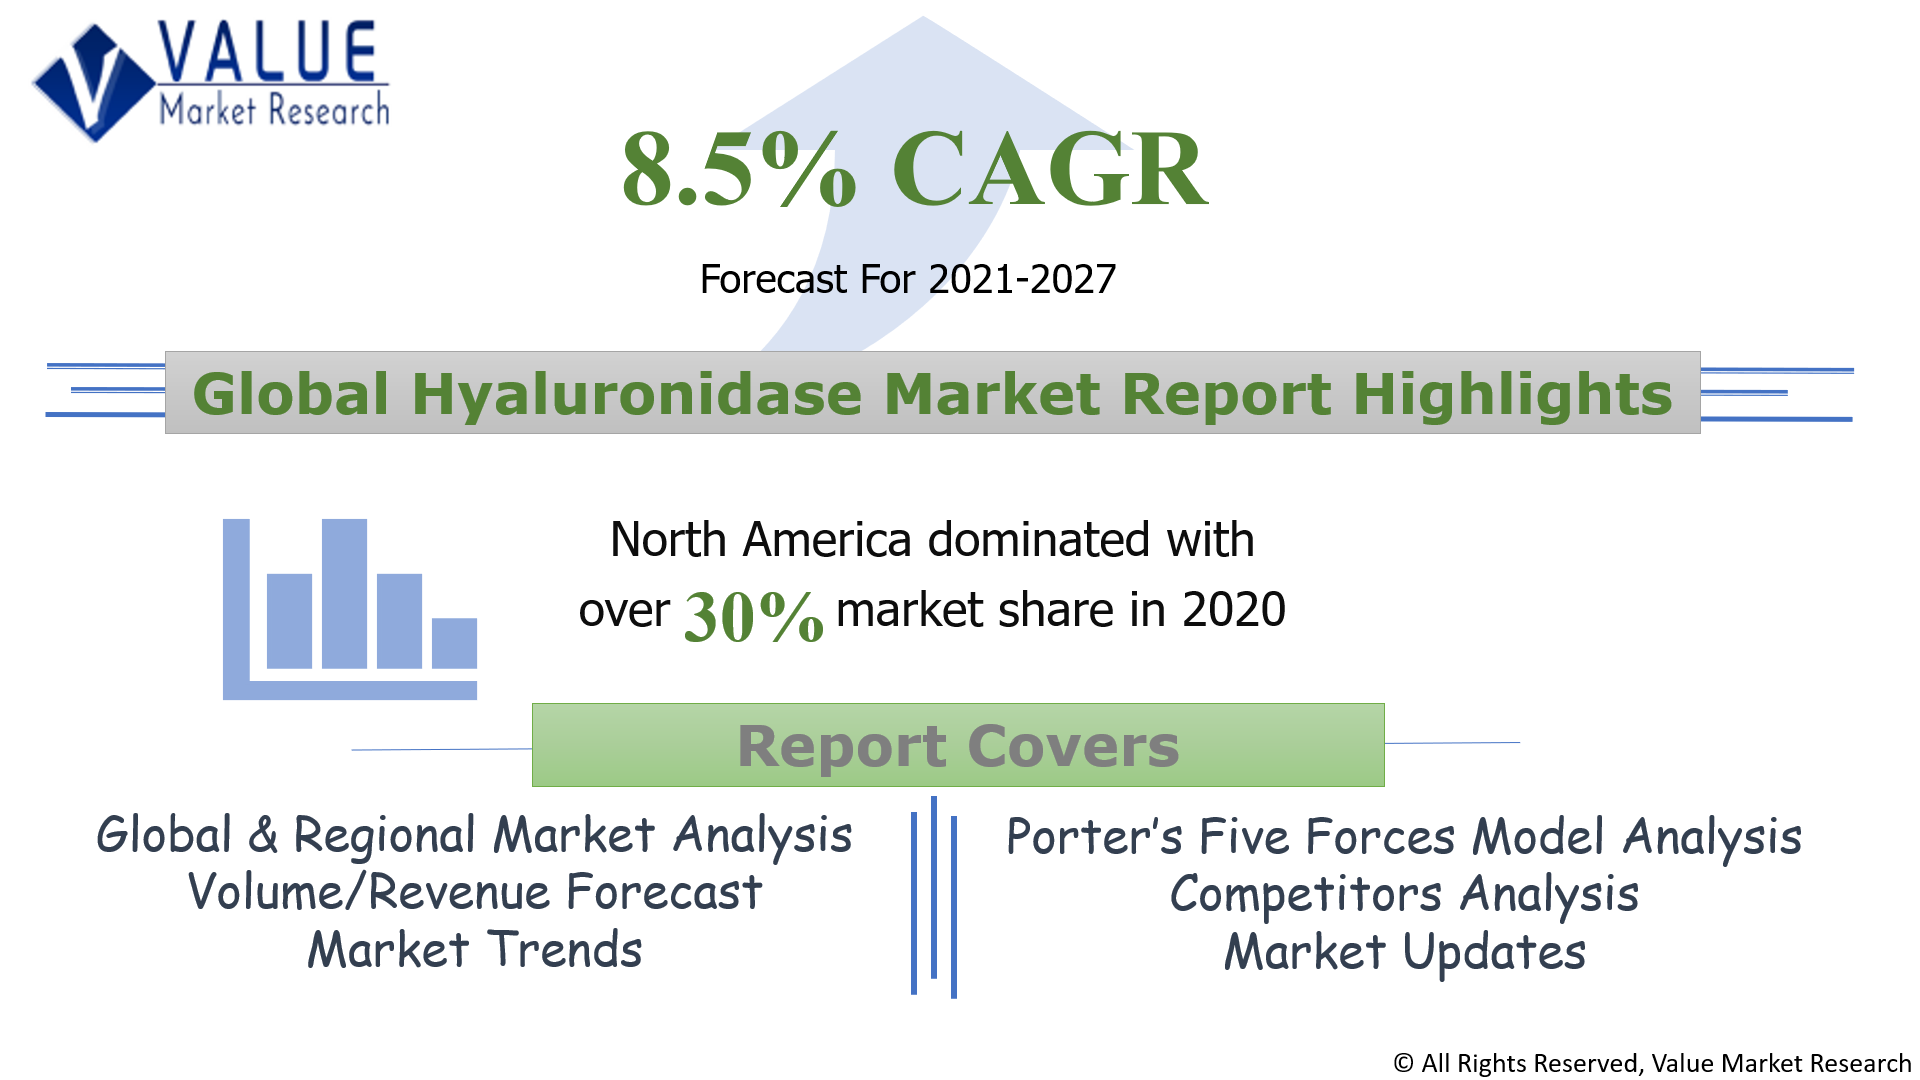 Global Hyaluronidase Market Share